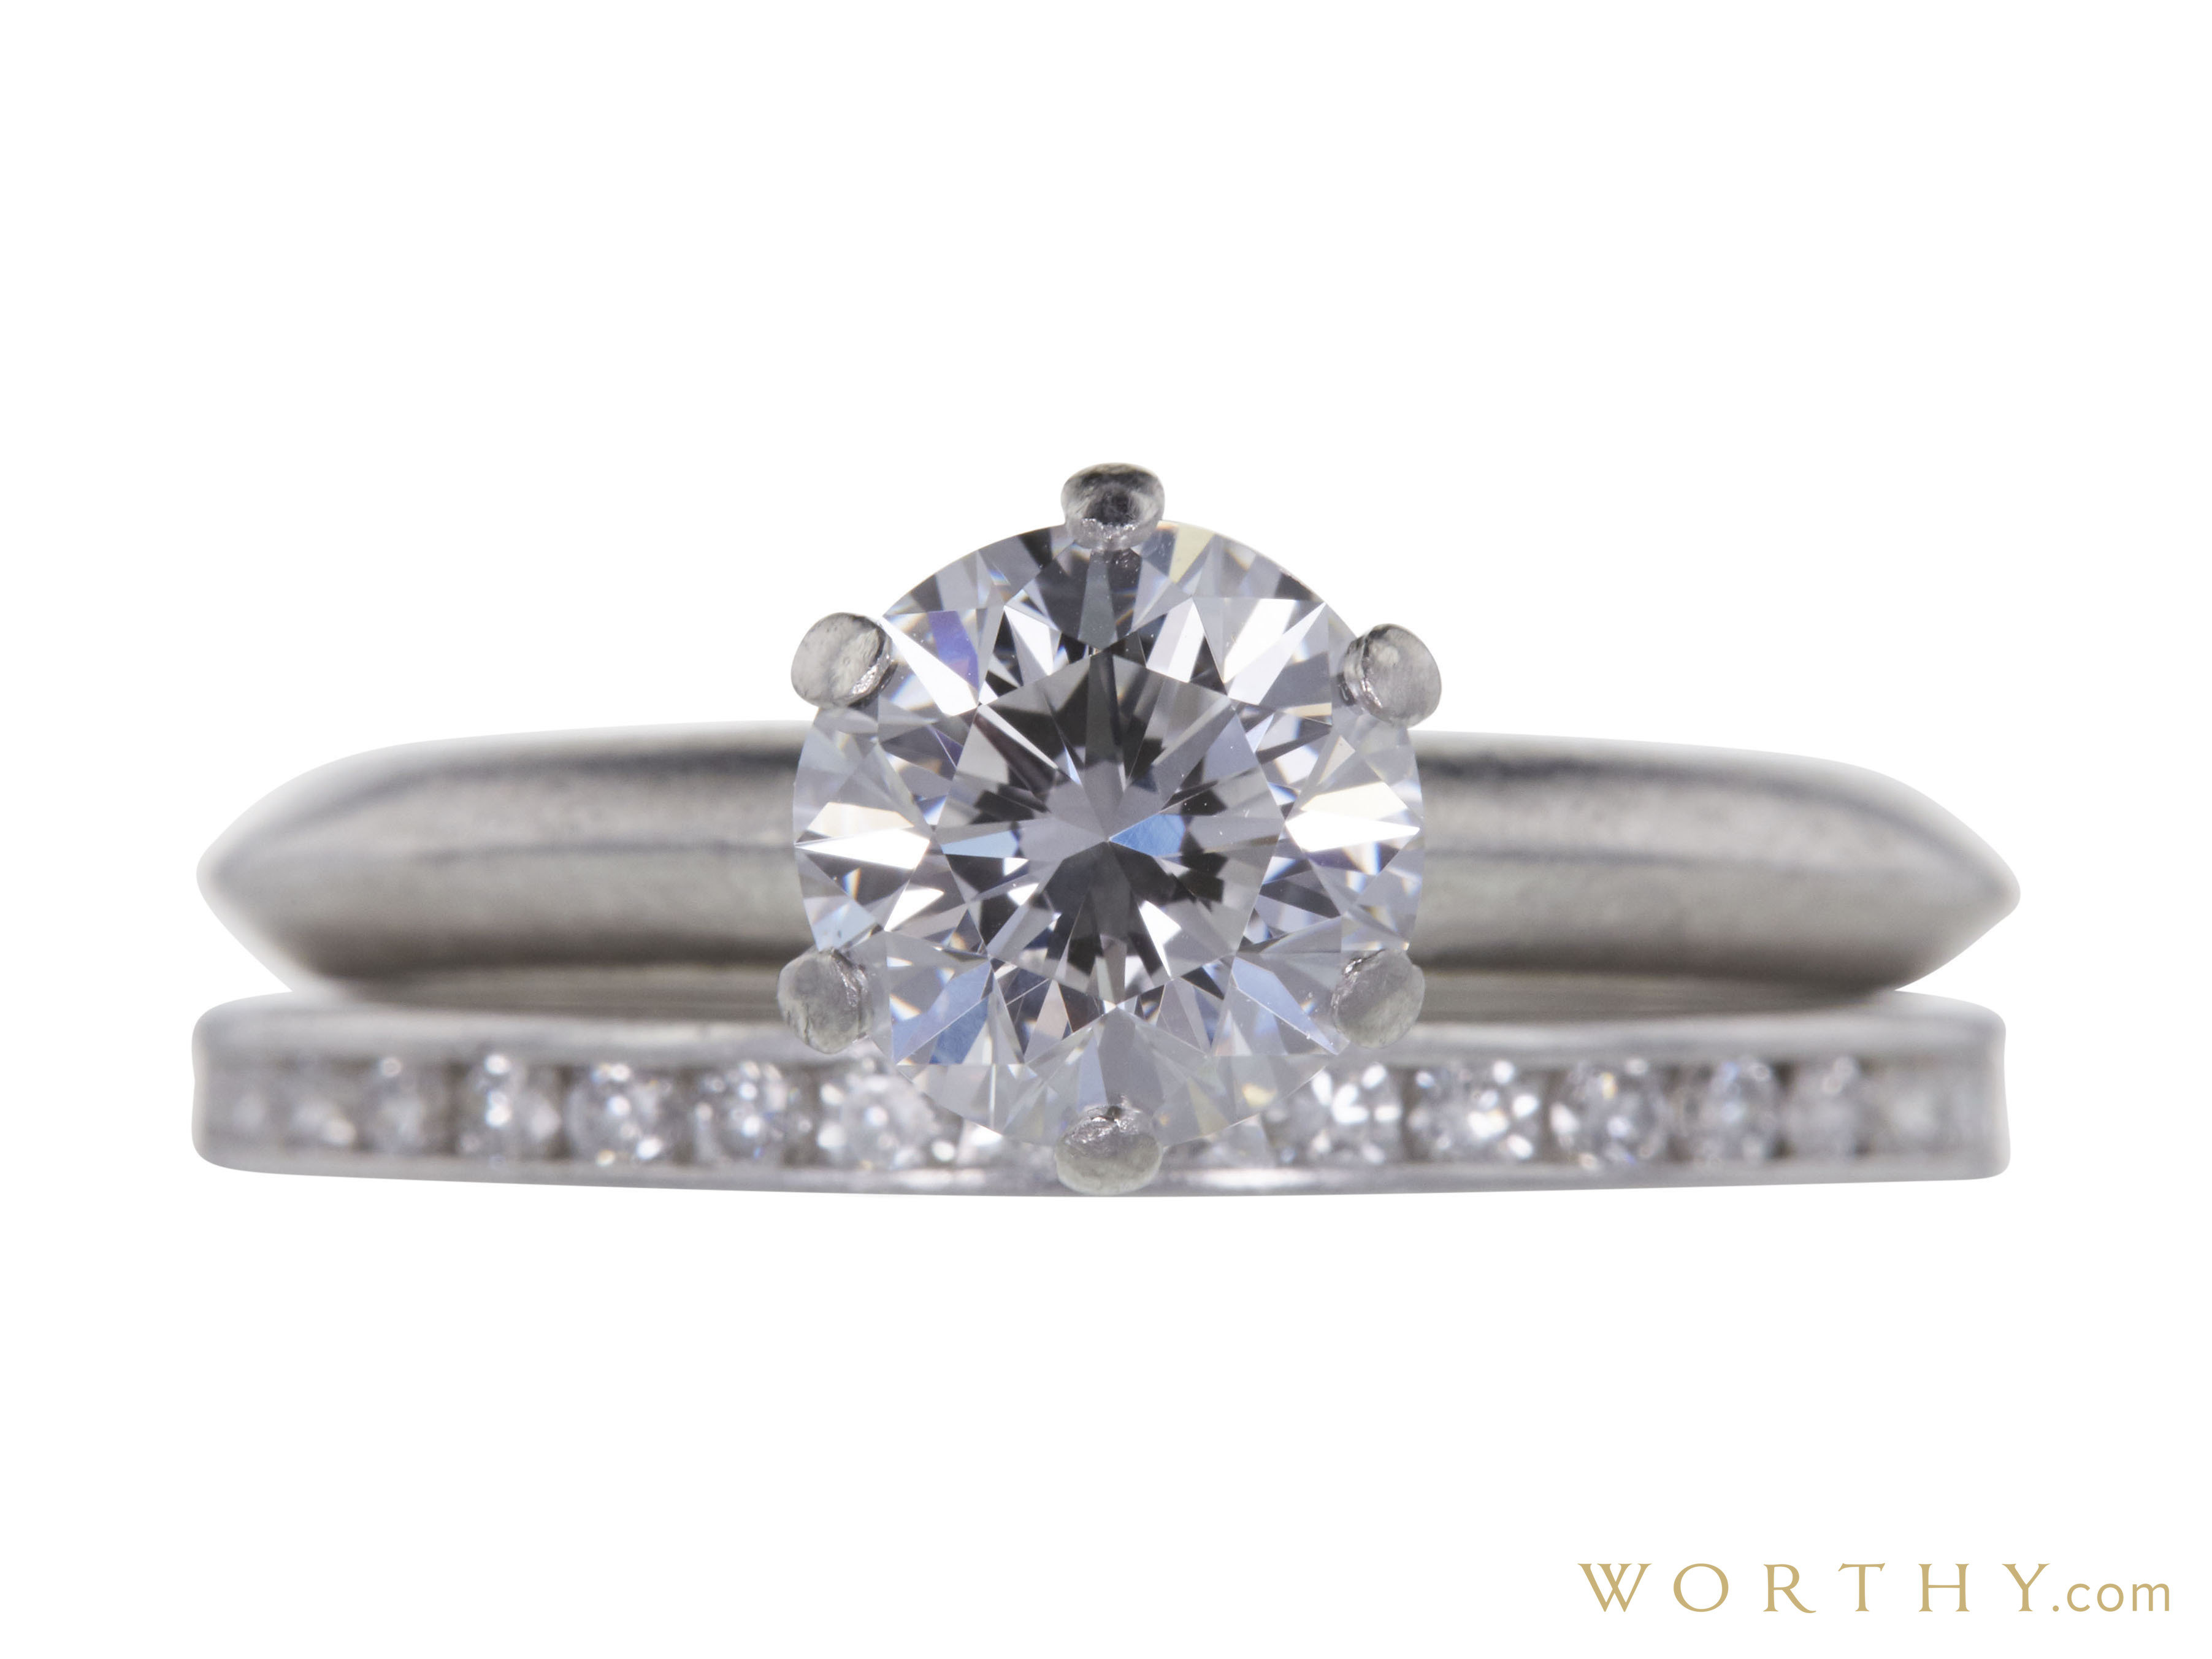 2ff14d5de Sell Your Diamond (1.04 carat sold for $8,142) - Worthy